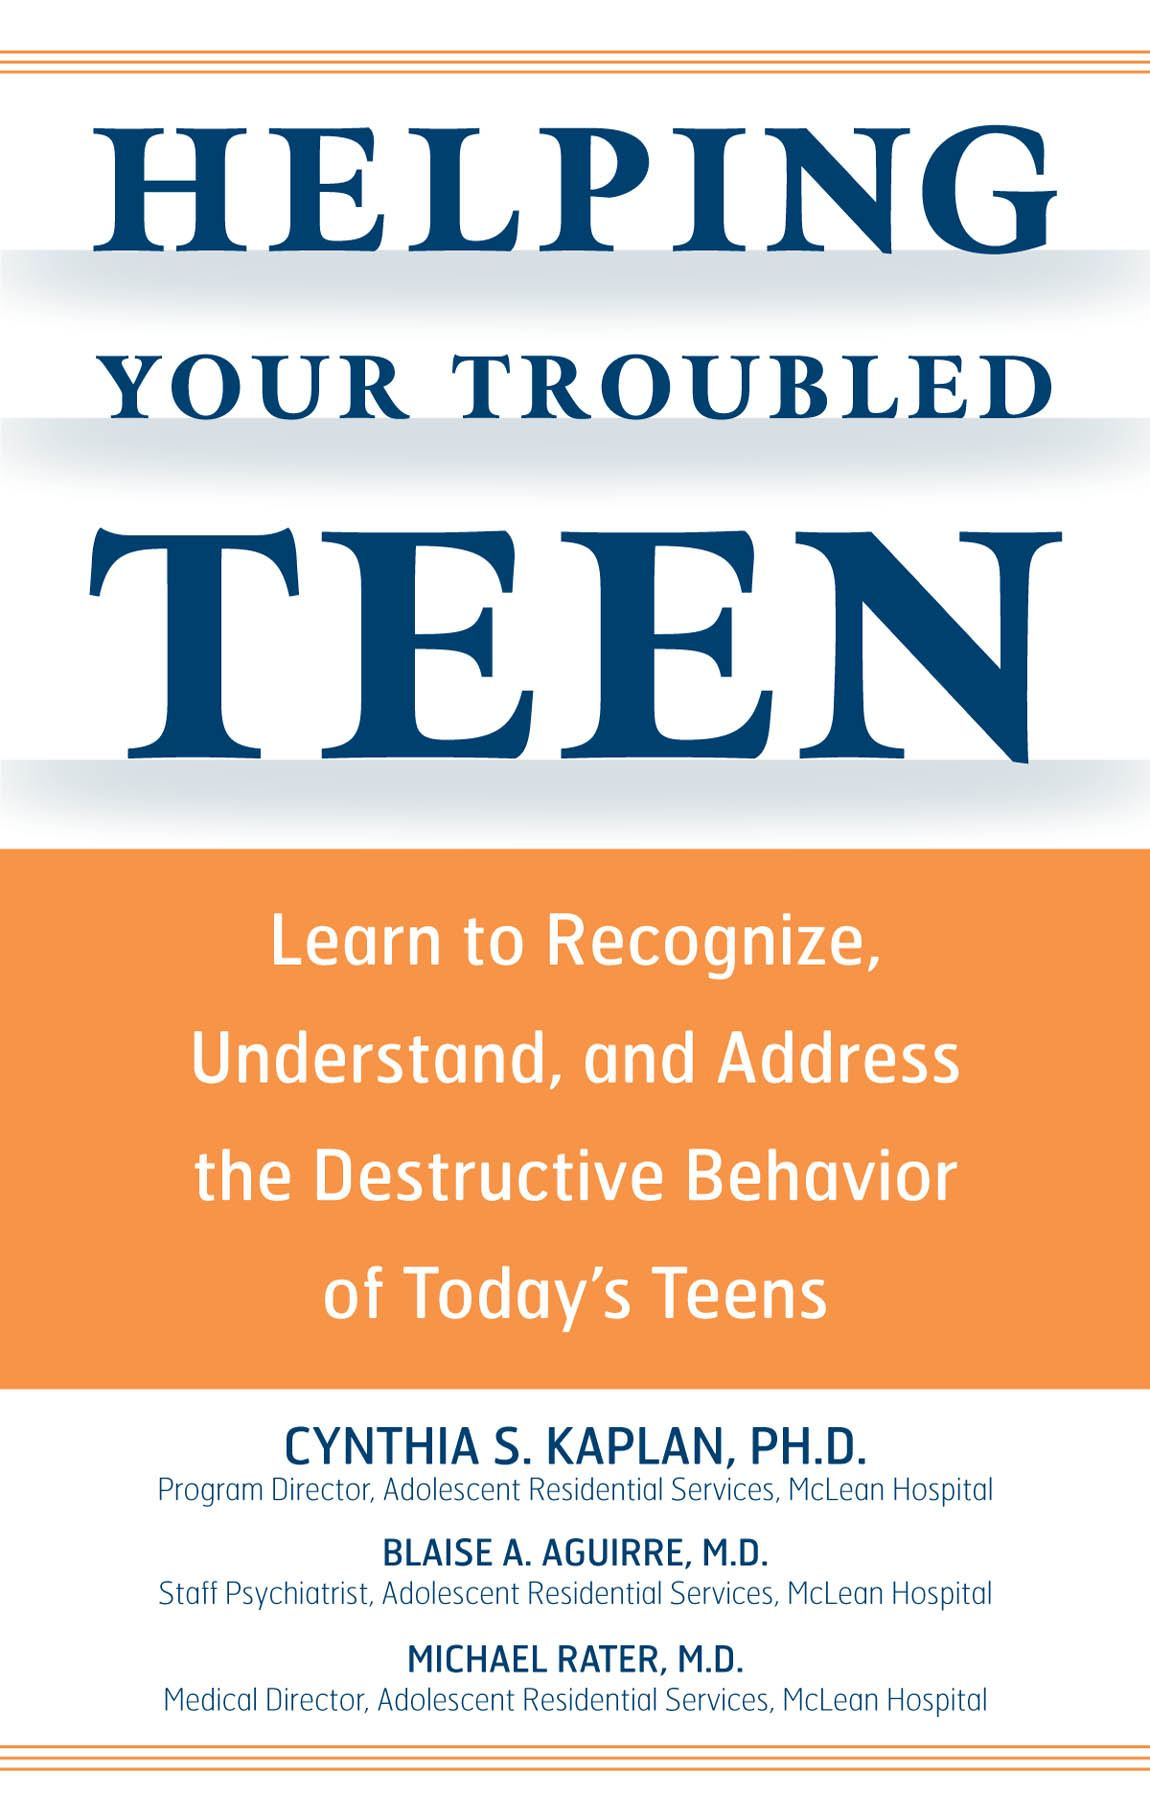 Helping Your Troubled Teen: Learn to Recognize, Understand, and Address the Destructive Behavior of Today's Teens and Preteens